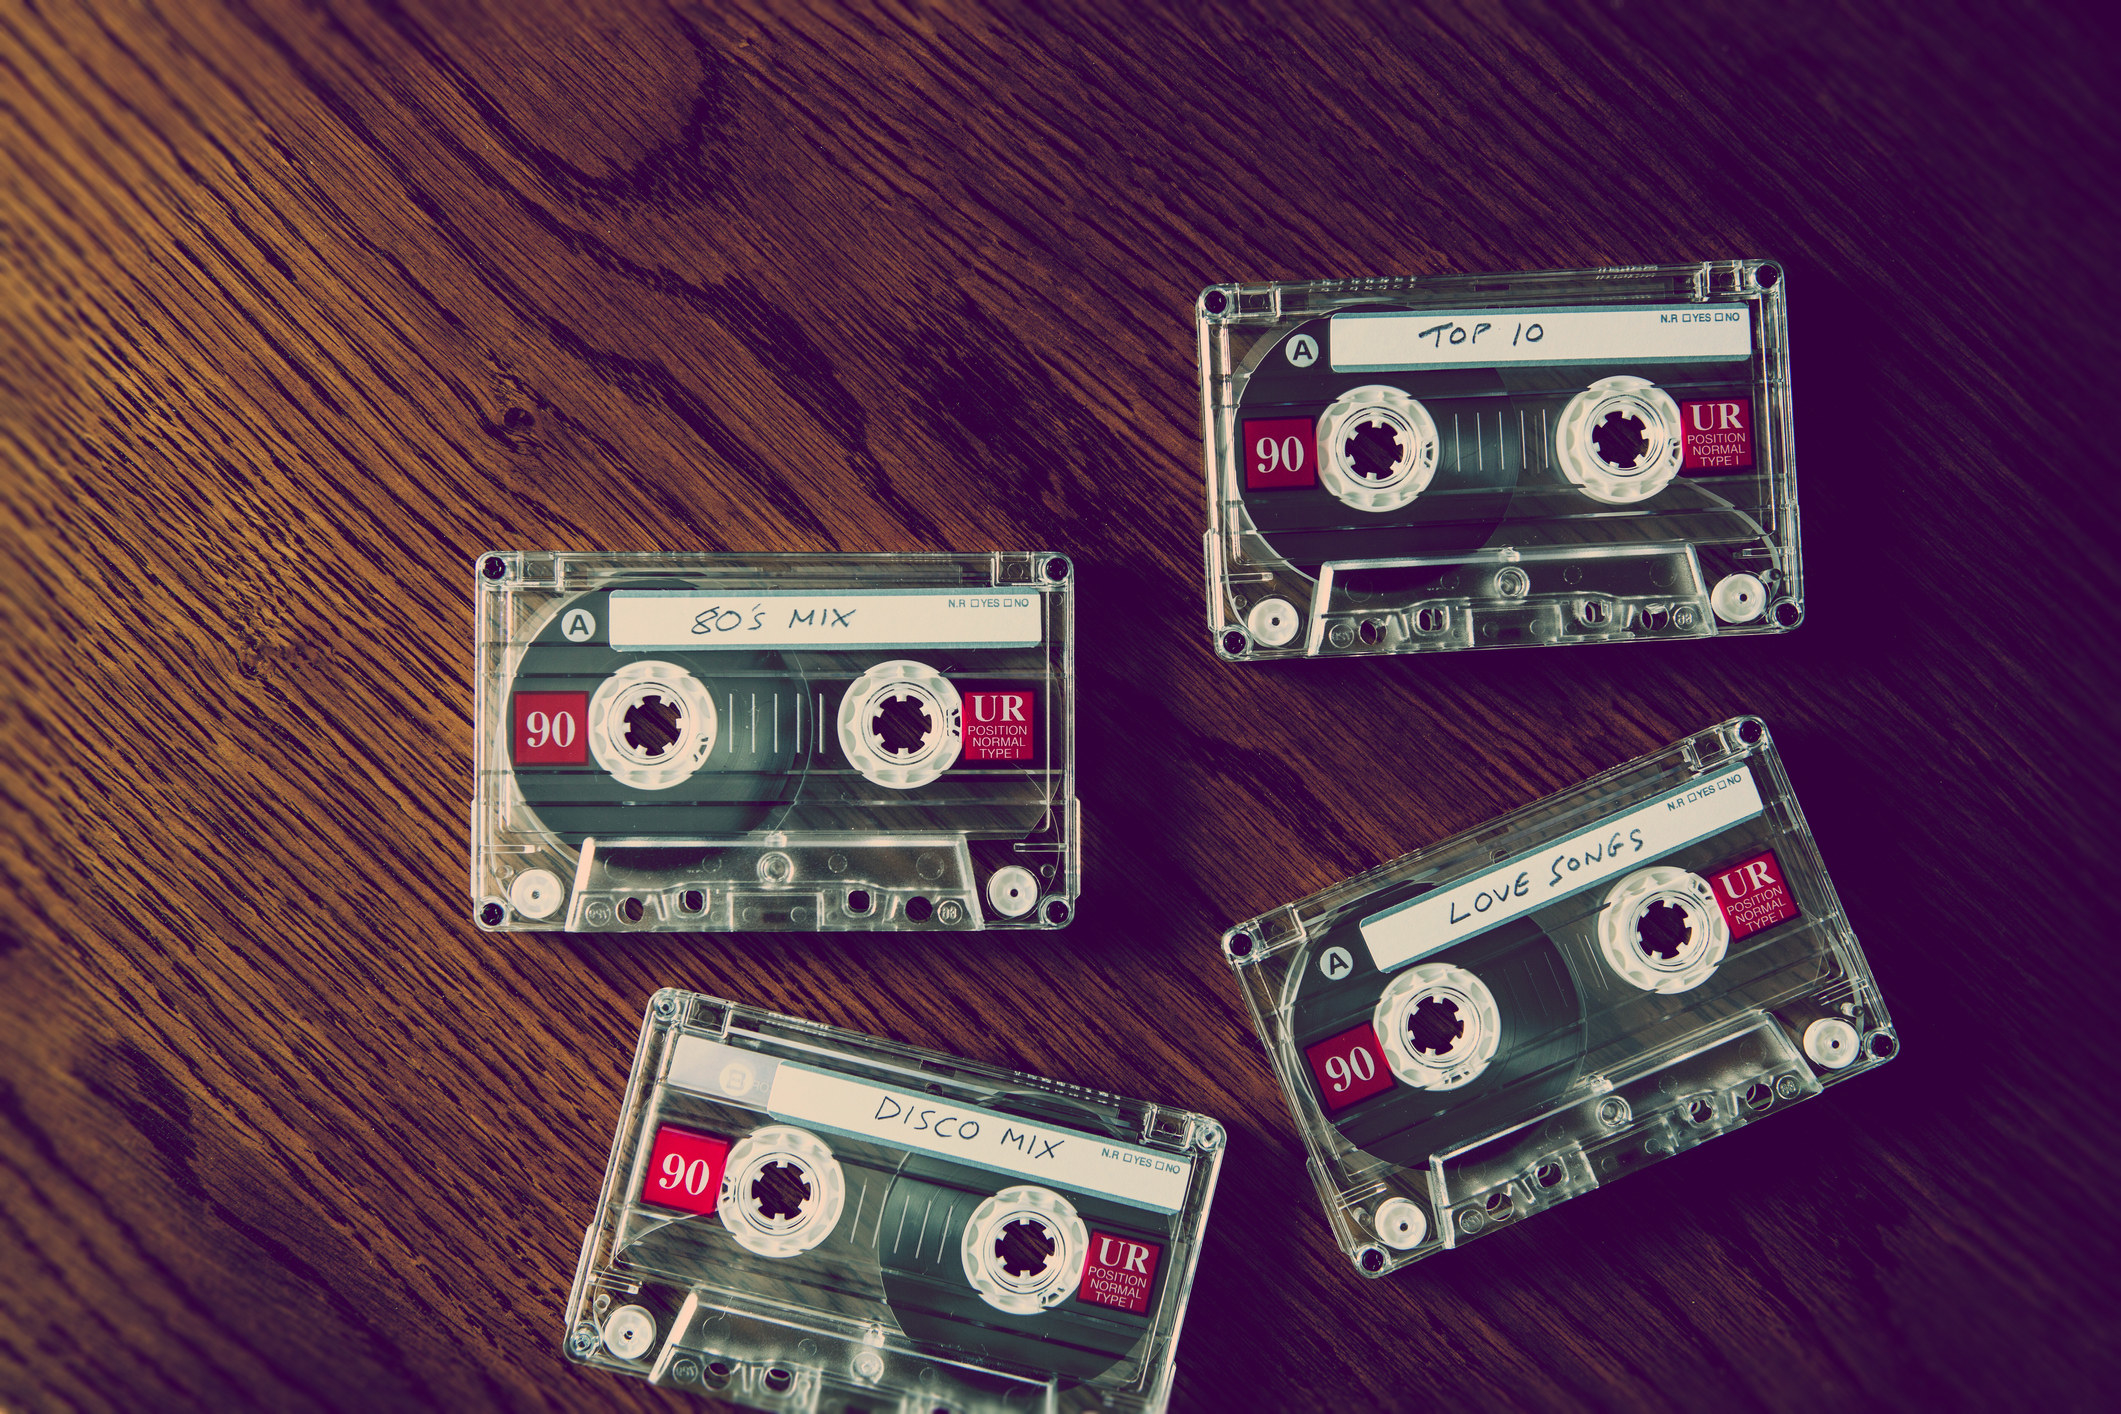 four casette tapes on a wooden able